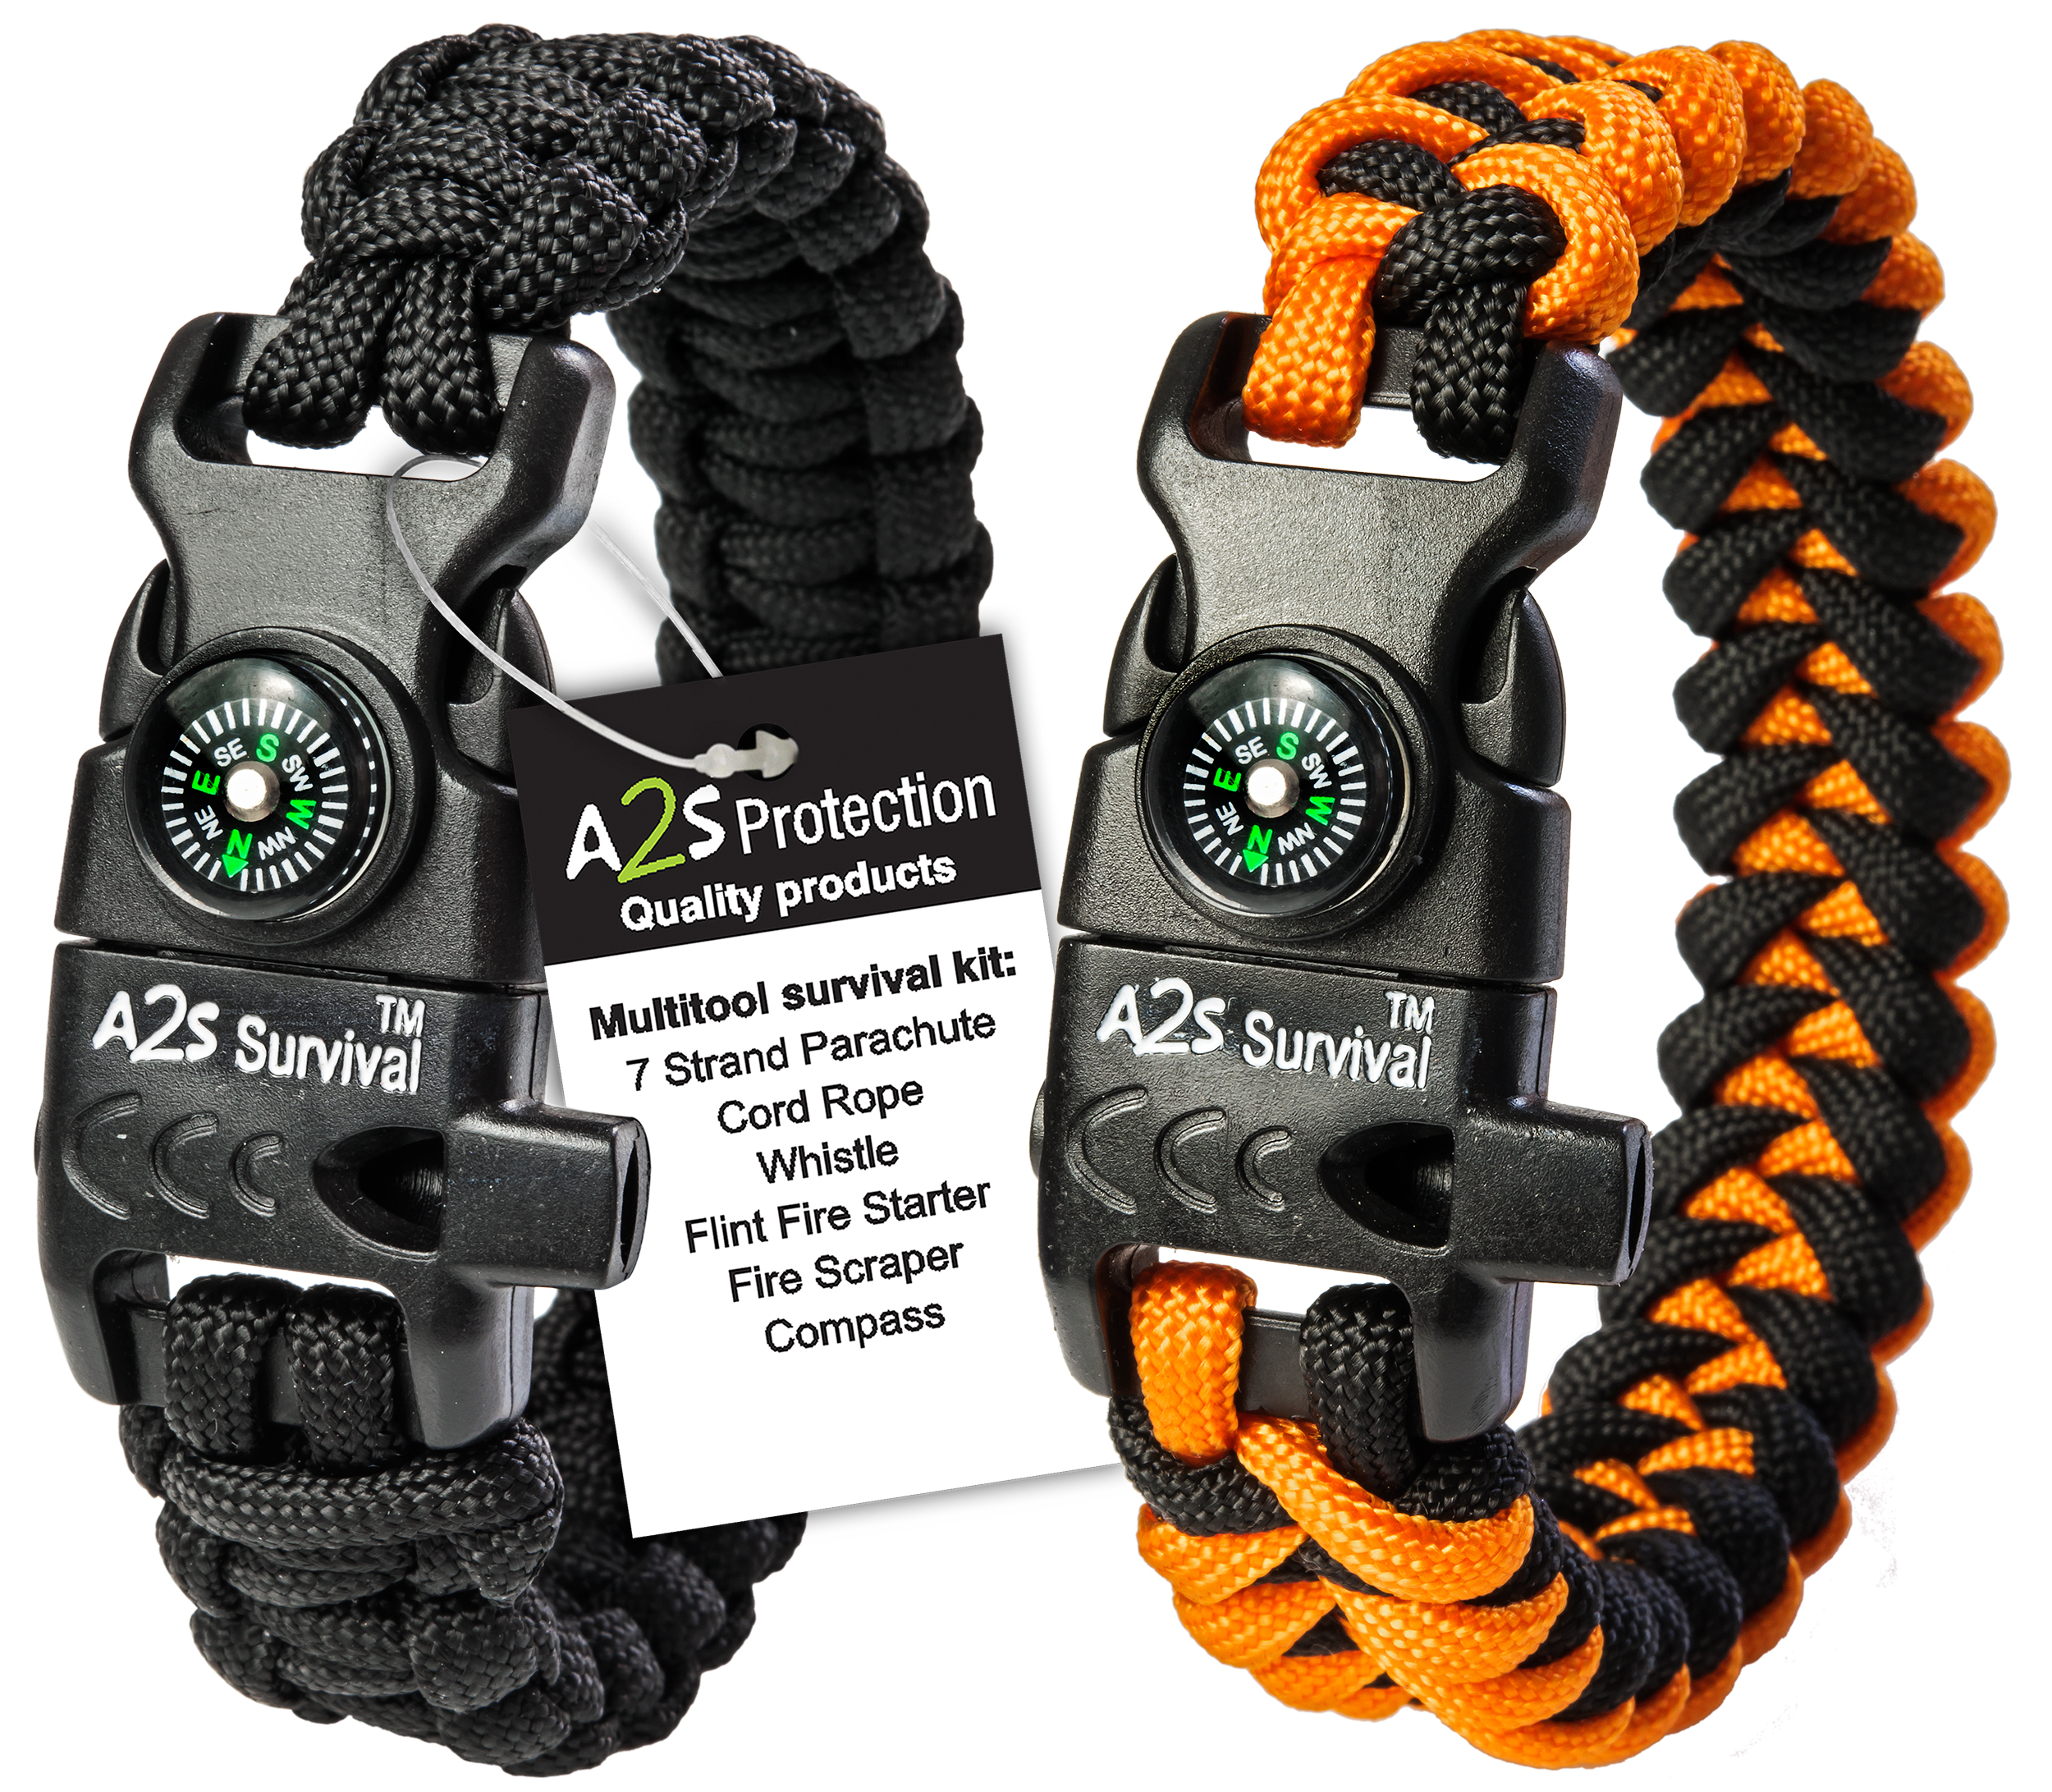 A2S Protection Paracord Bracelet K2-Peak Survival Gear Kit with Embedded Compass, Fire Starter, Emergency Knife & Whistle Black   Orange... by All2shop